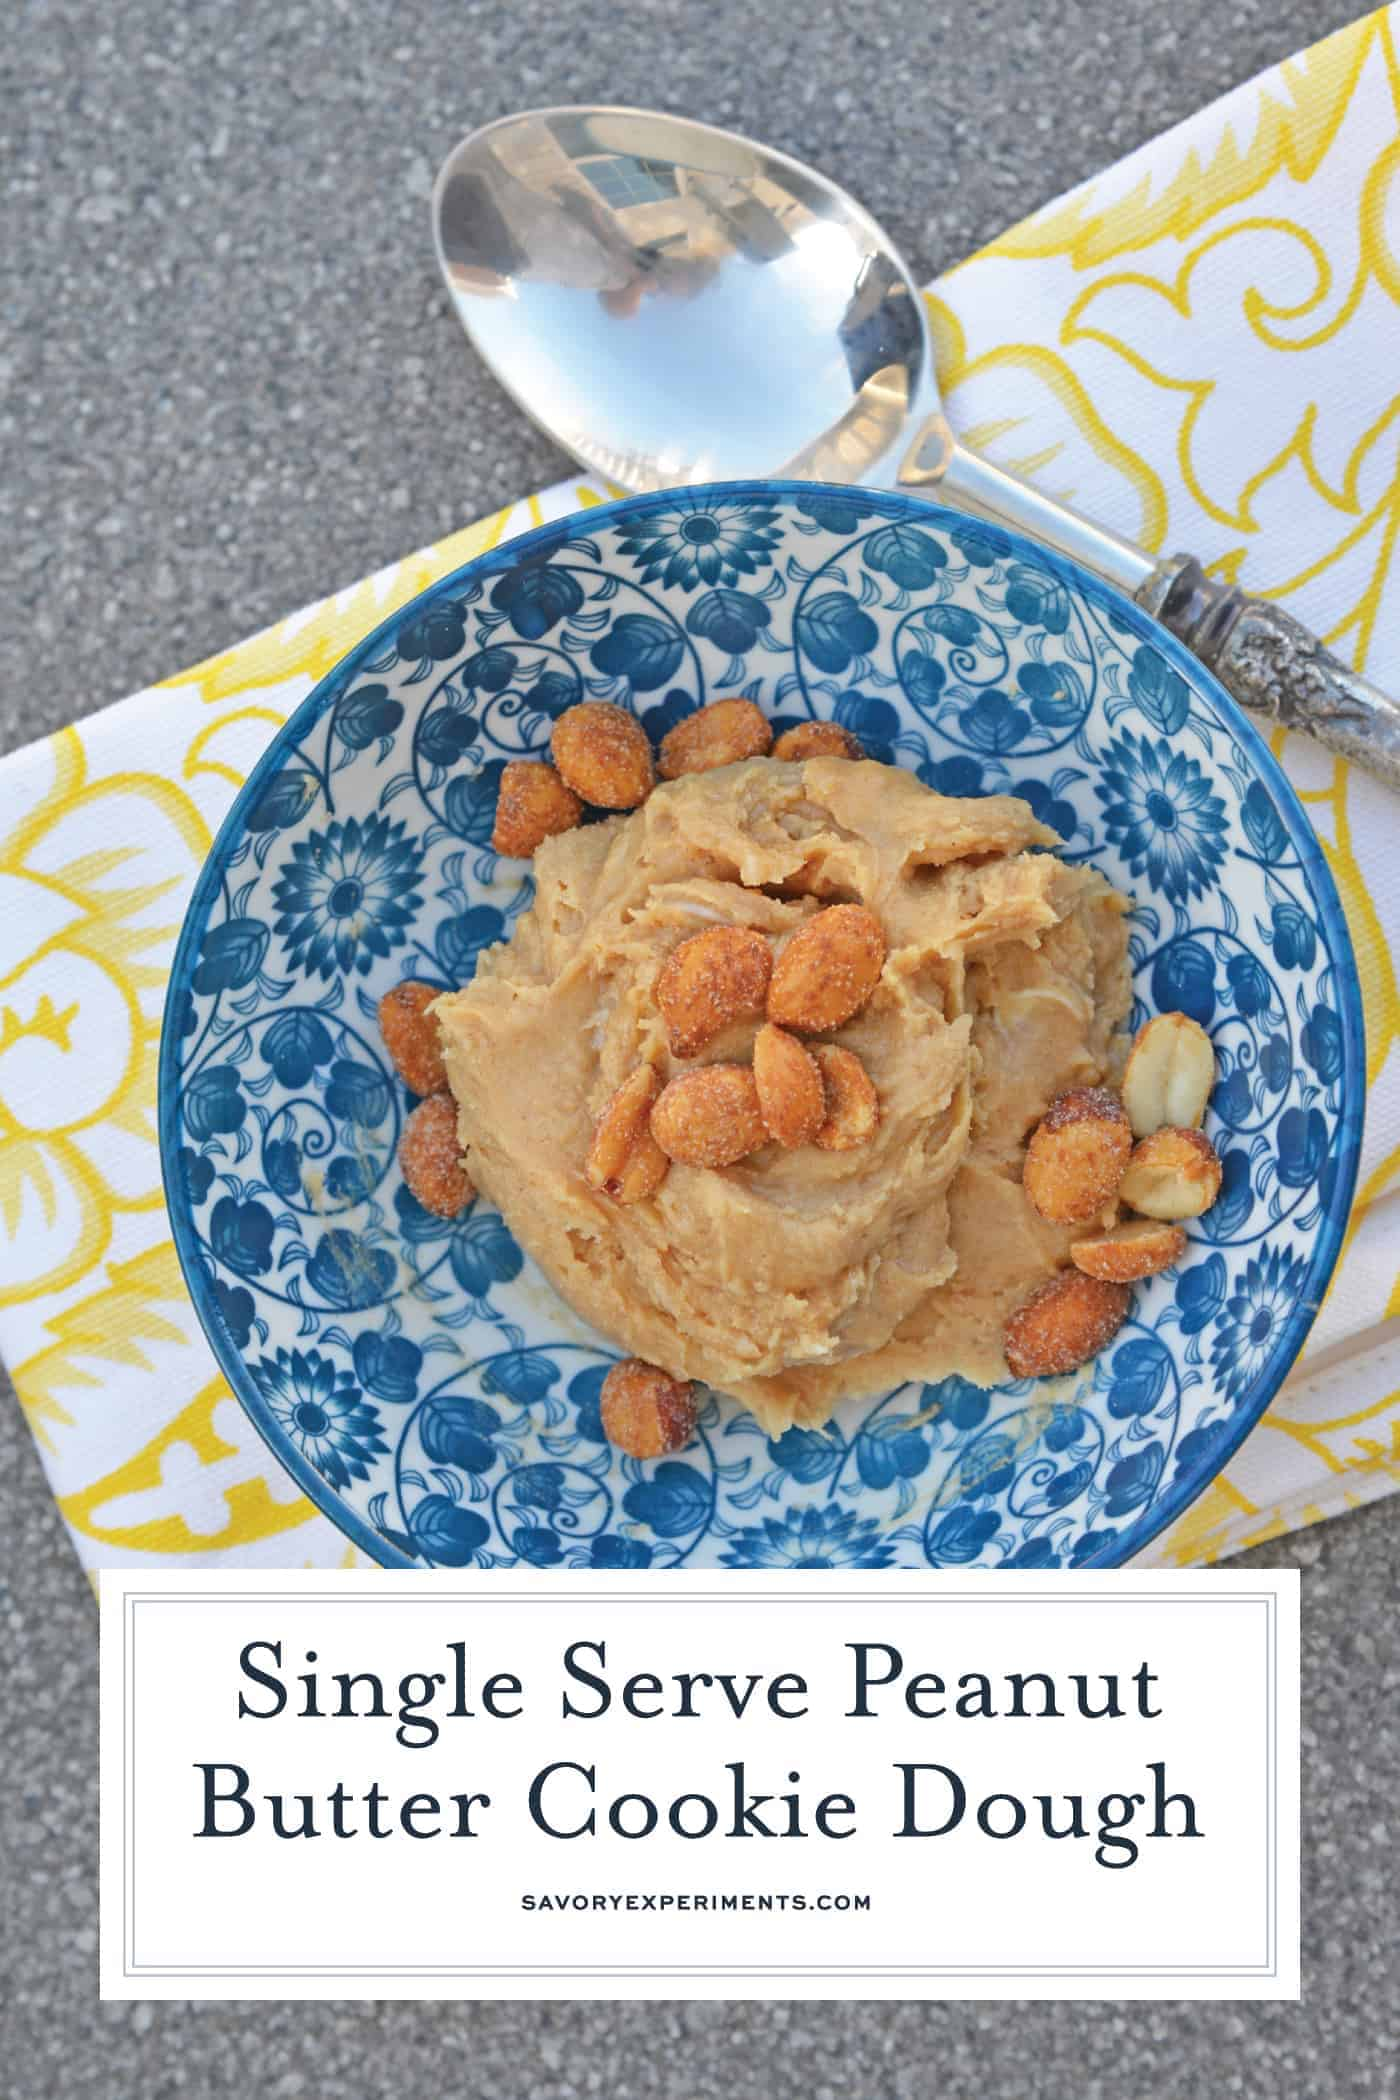 Indulge in small bowl of heaven: eggless single serve Peanut Butter Cookie Dough. You know you want some. #ediblecookiedough #singleservecookiedough #peanutbuttercookiedough www.savoryexperiments.com